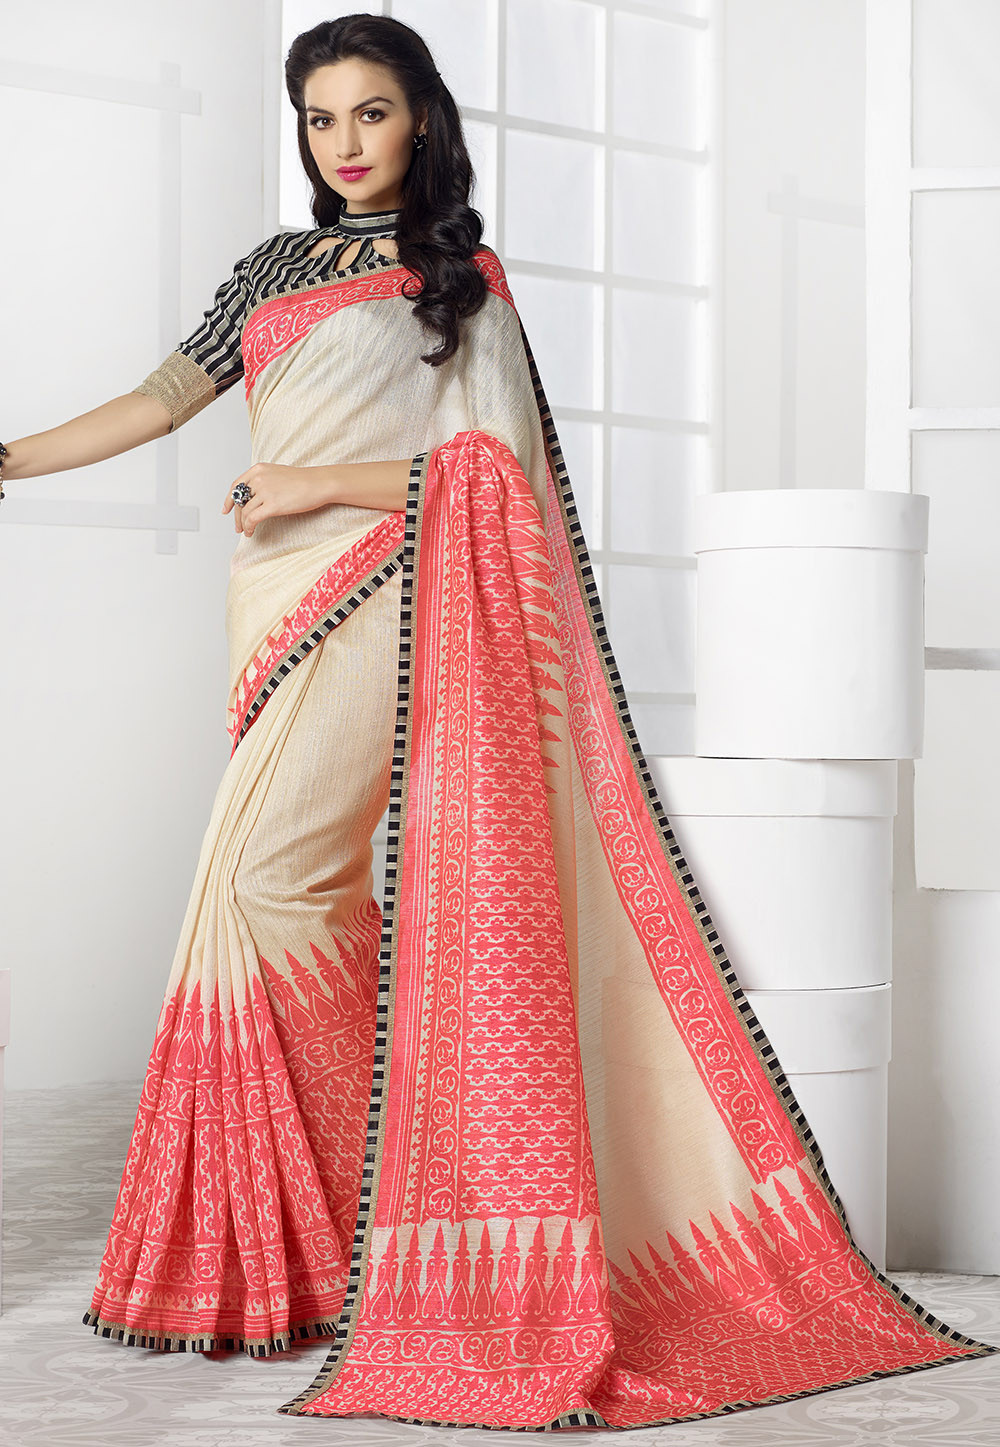 Linen Fabric: Know Its Origin, Uses To Design Sarees, Its